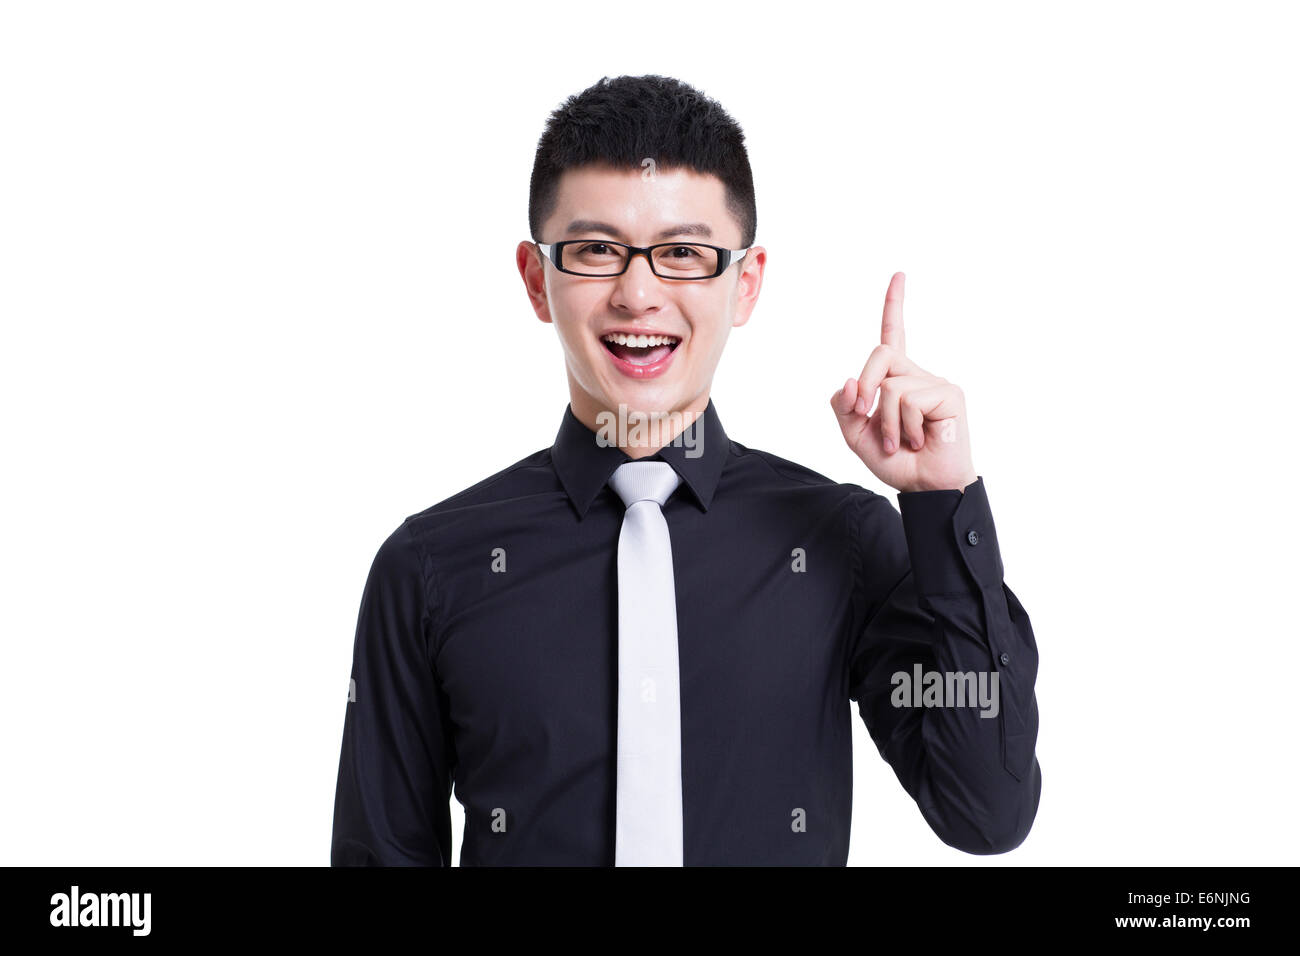 Cheerful young man pointing Photo Stock